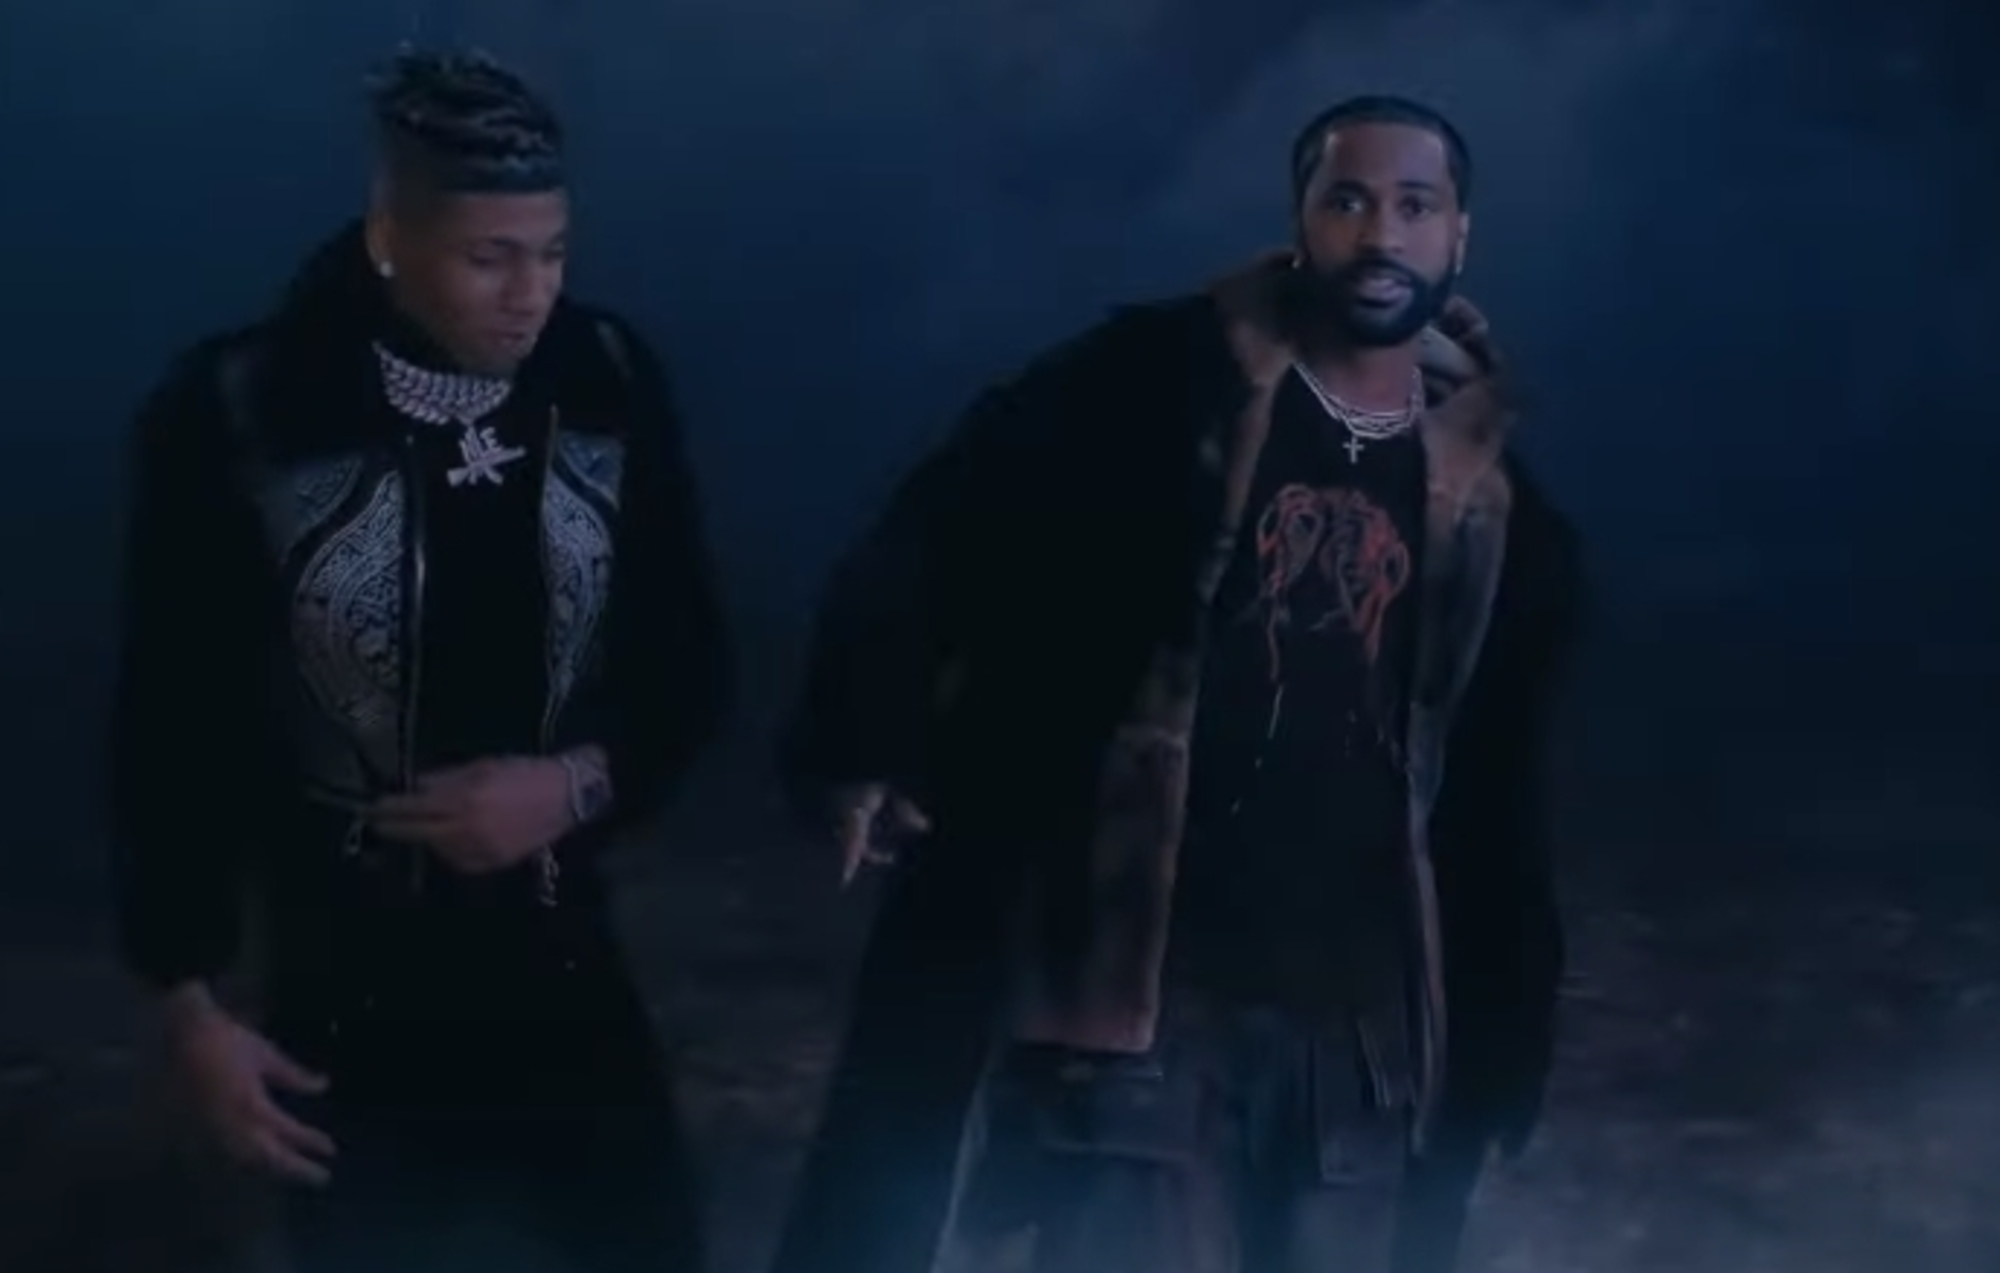 Watch Big Sean and NLE Choppa team up in video for 'Moonlight'